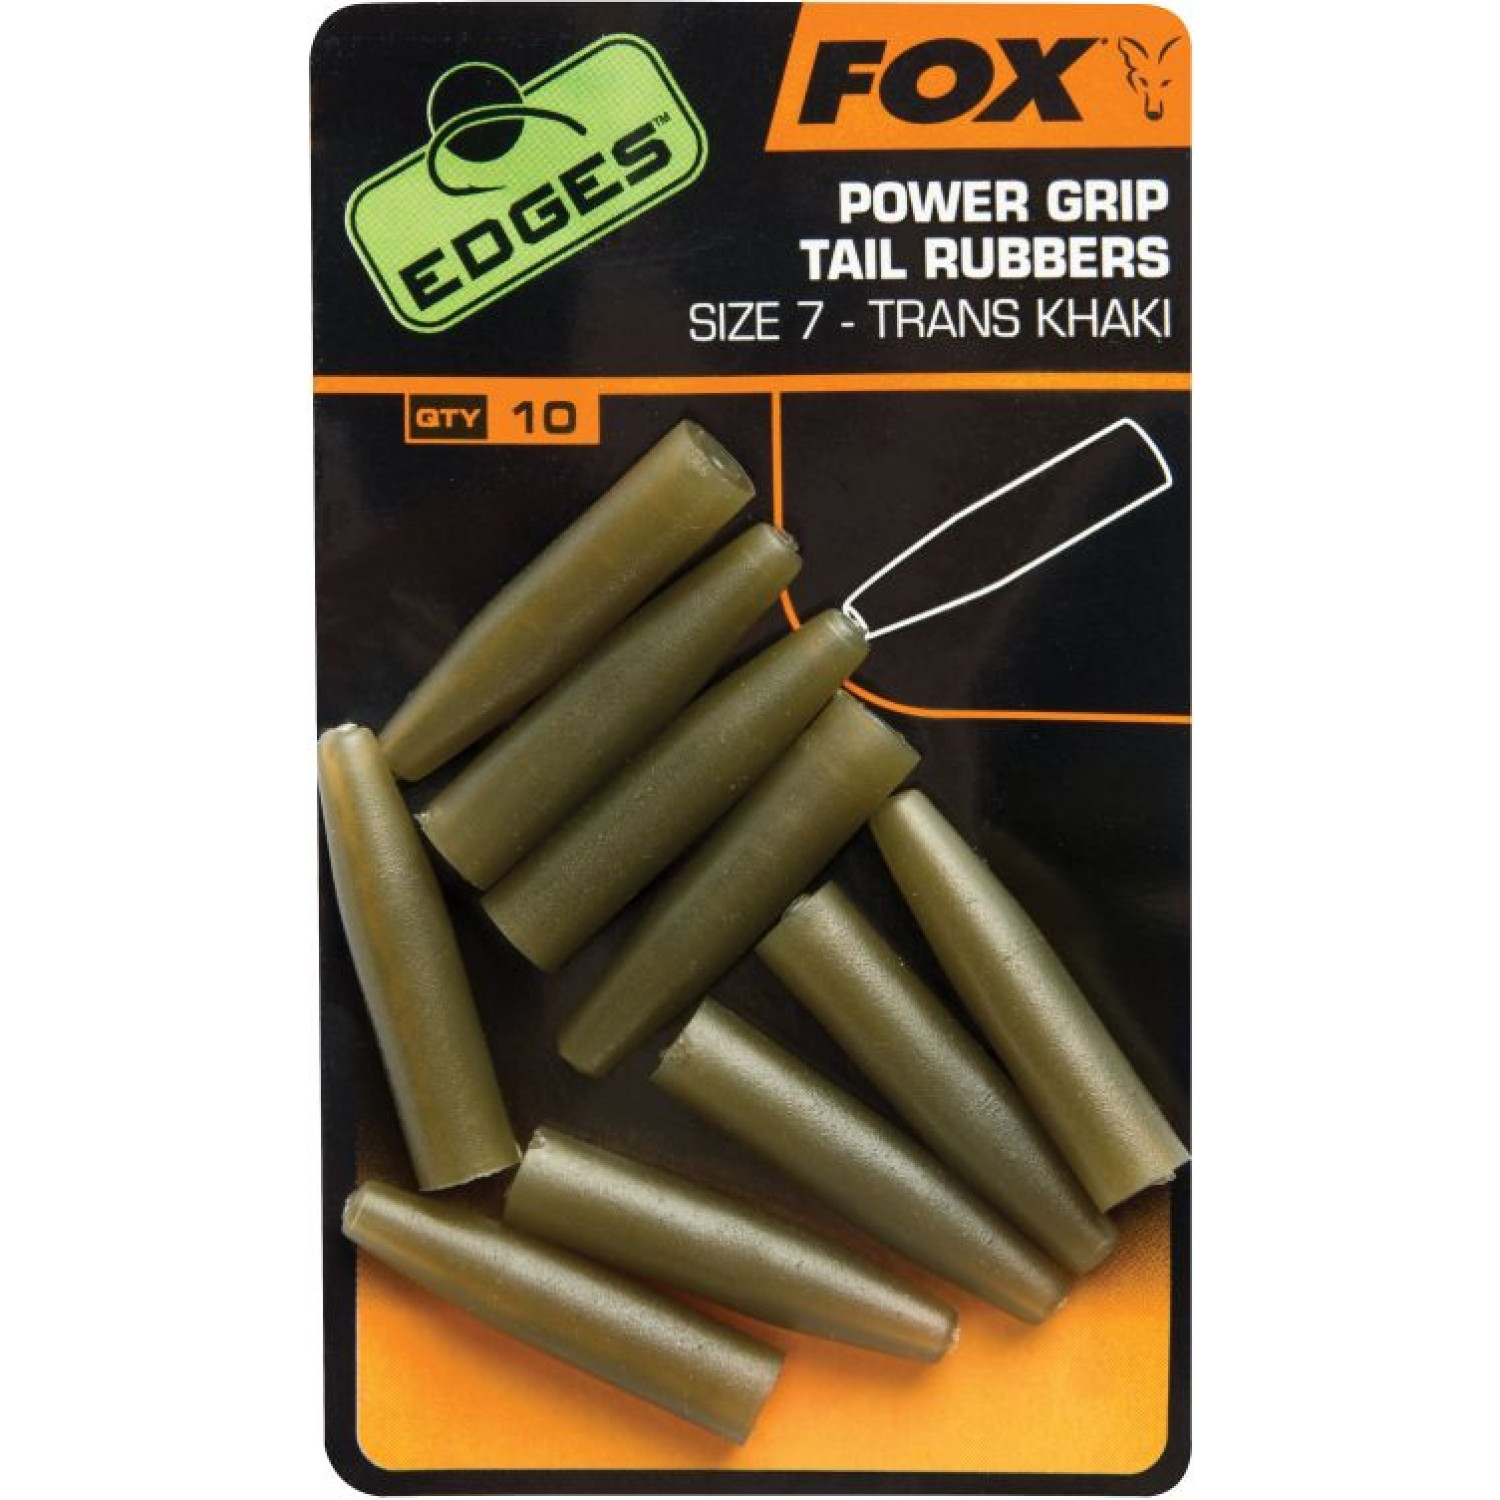 FOX Edges Powergrip Tail Rubbers, Size 7